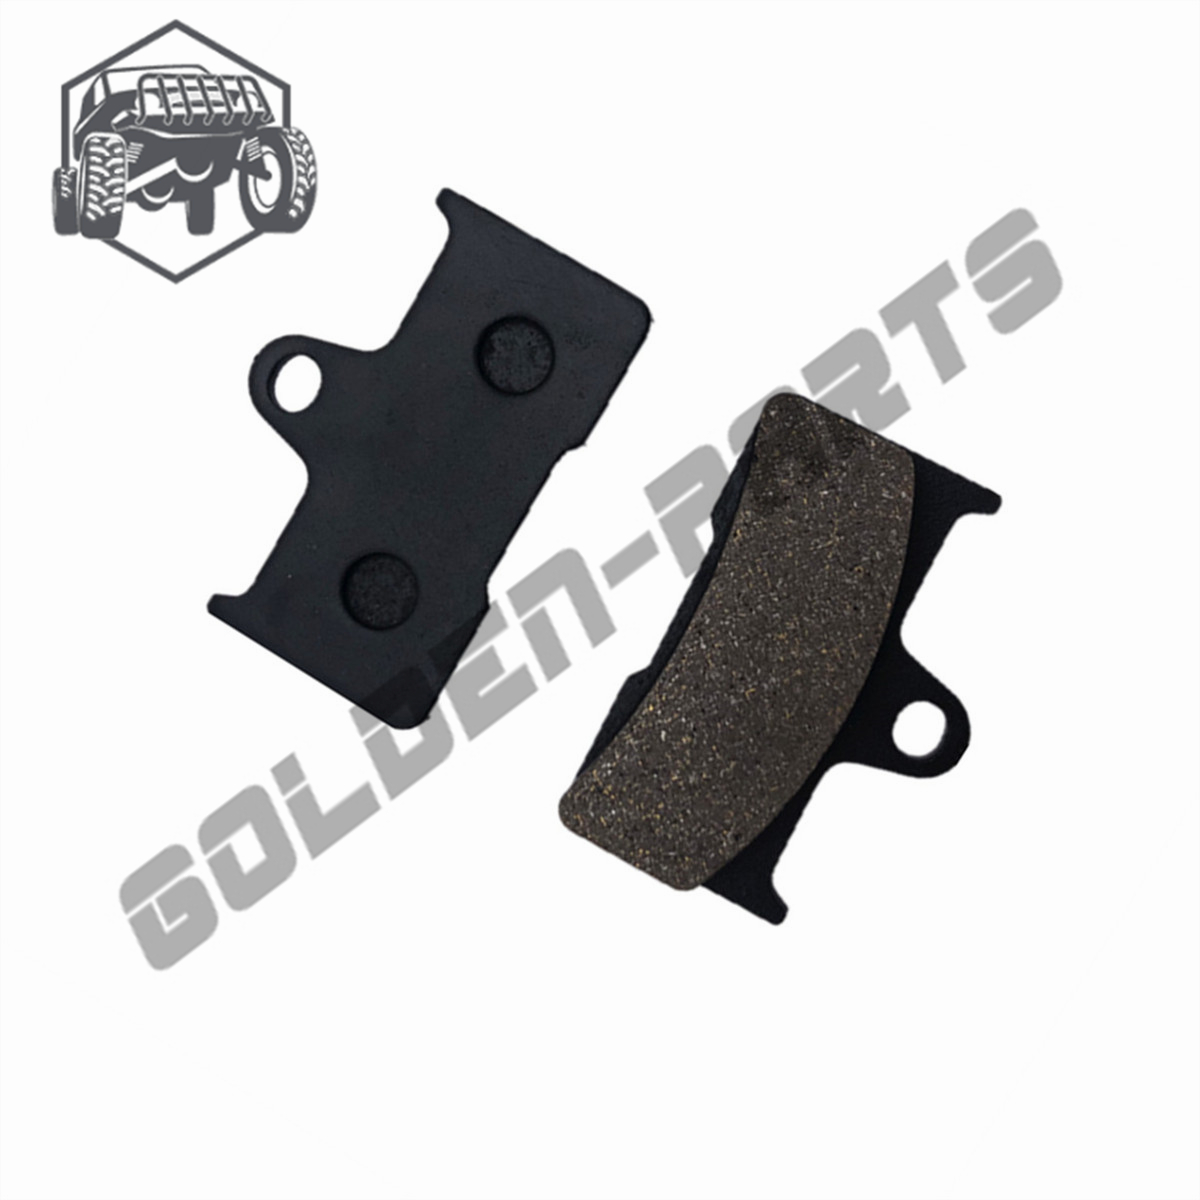 REAR BRAKE PAD Fits For 500CC 600CC 800CC X5 X6 X8 ATV UTV PARTS 9010-080510